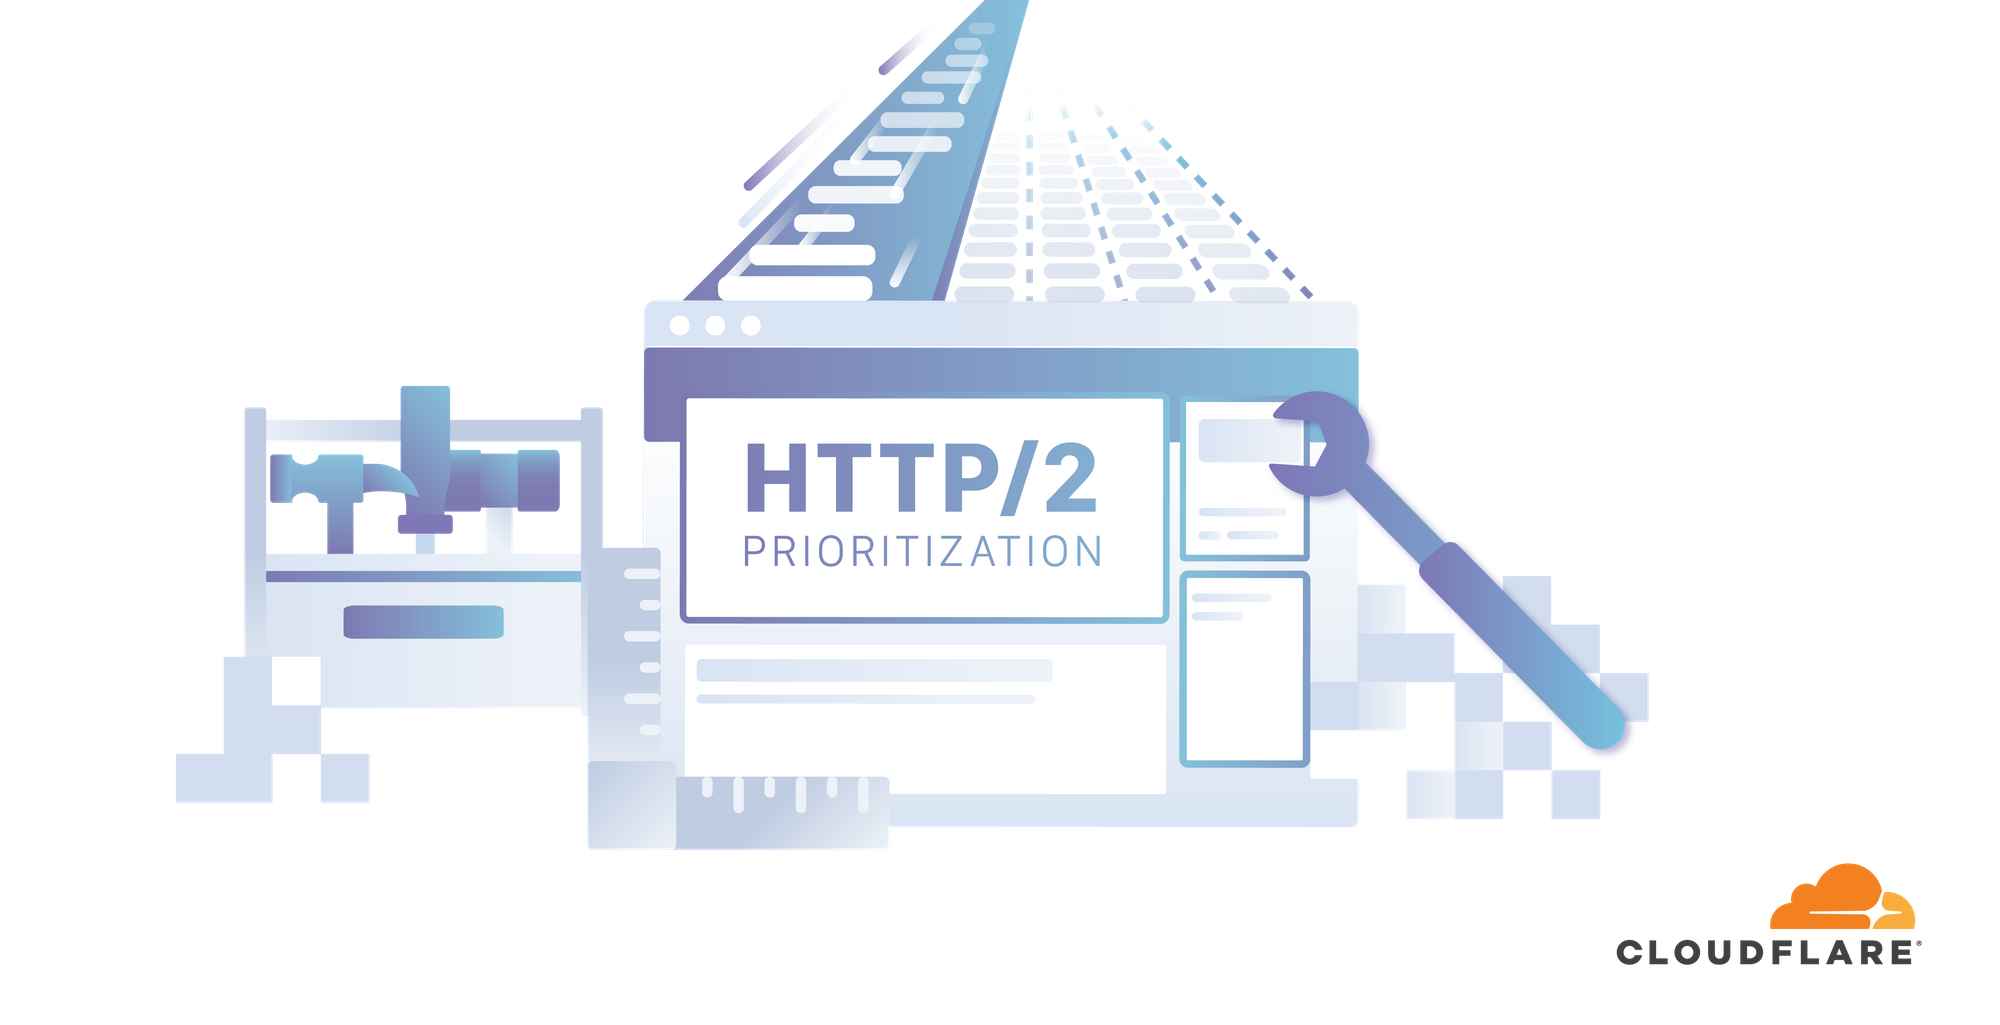 NGINX structural enhancements for HTTP/2 performance